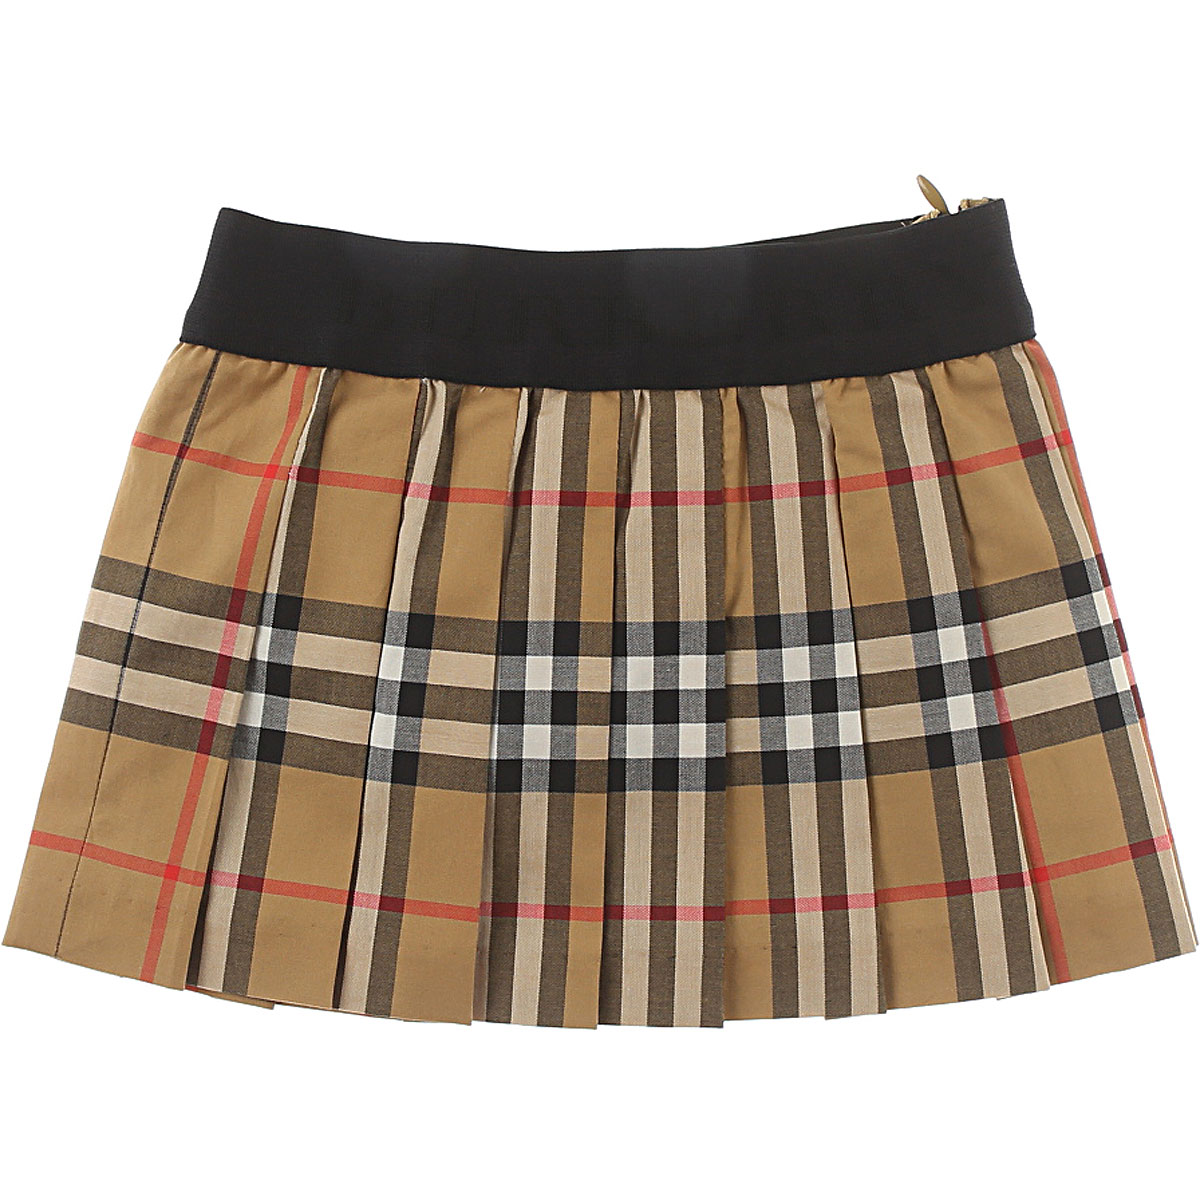 Image of Burberry Baby Skirts for Girls, Brown, Cotton, 2017, 12M 18M 3Y 6M